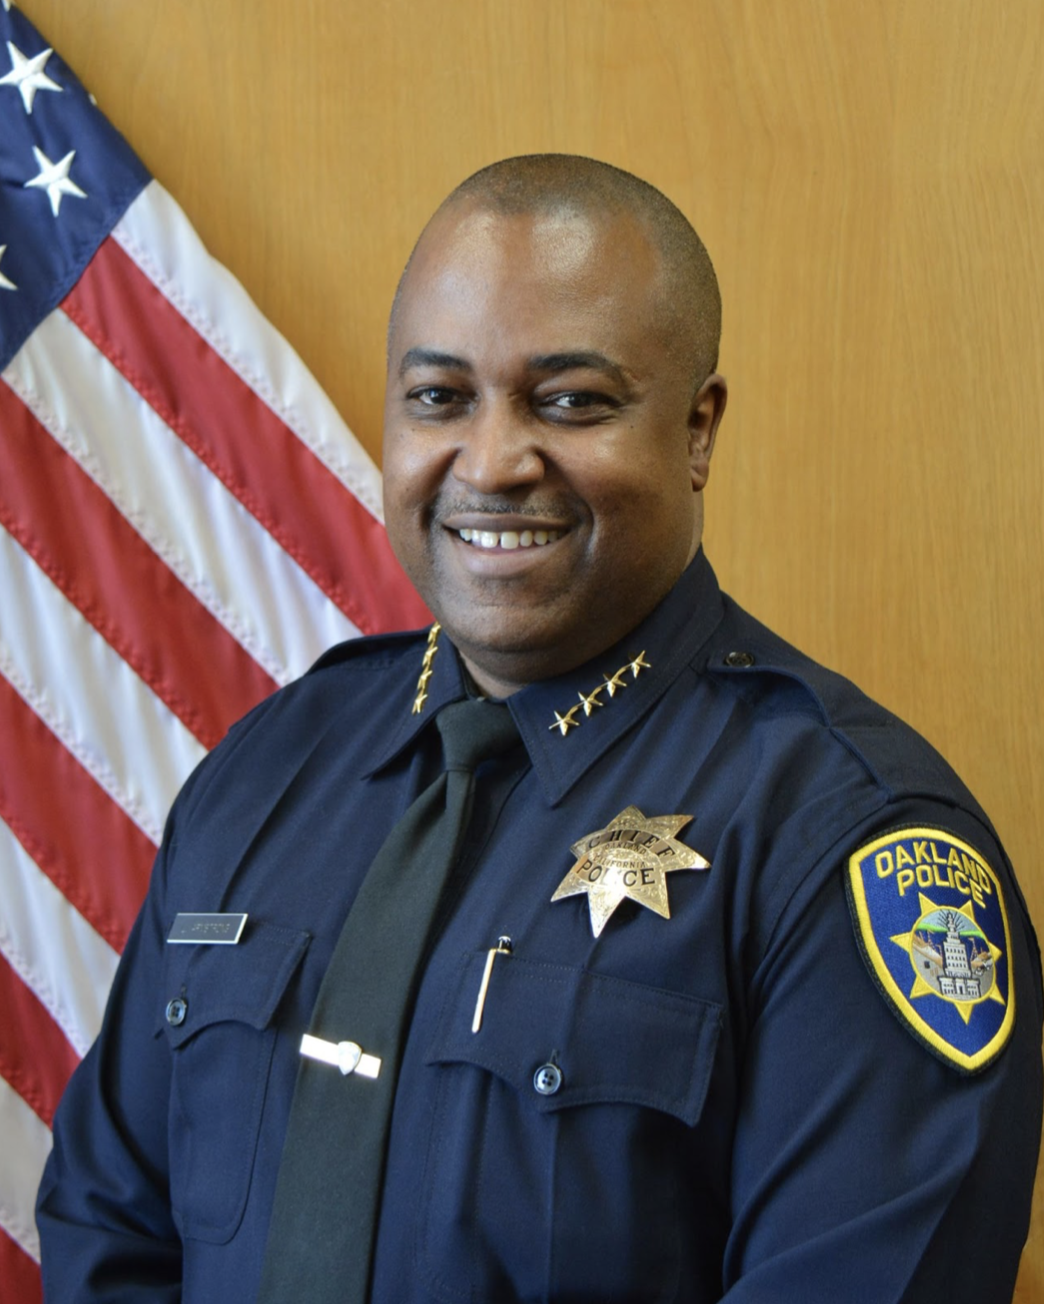 Black police officer, in uniform, smiling. American flag in the background